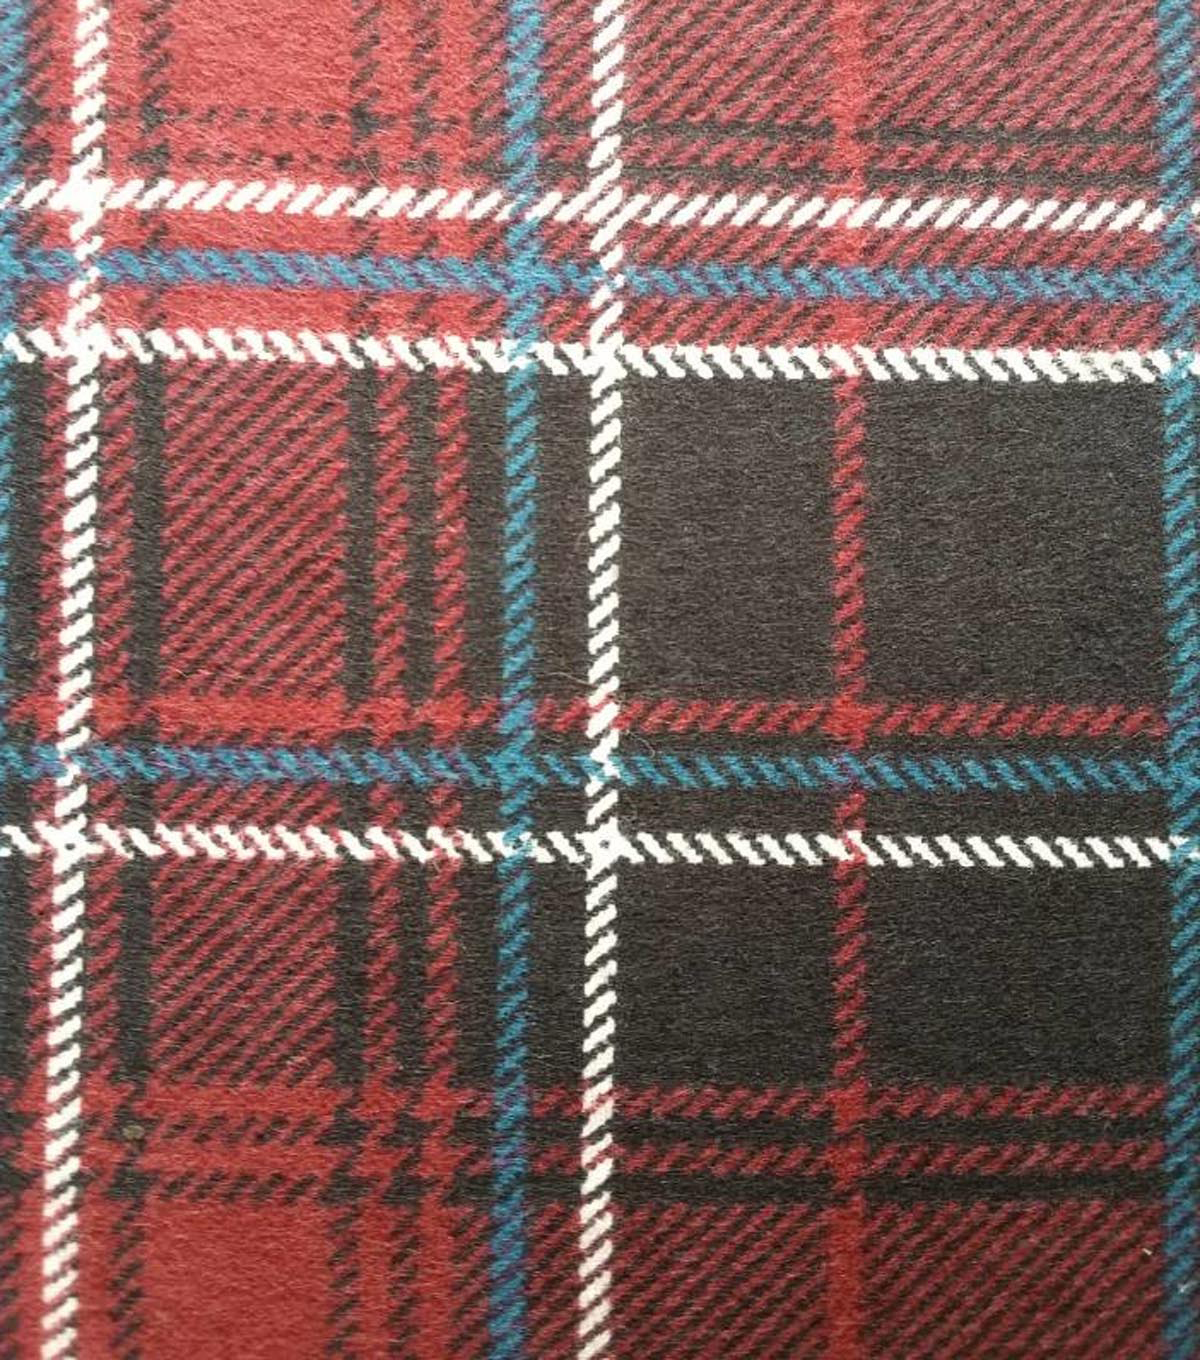 Snuggle Flannel Fabric -Burgundy Plaid